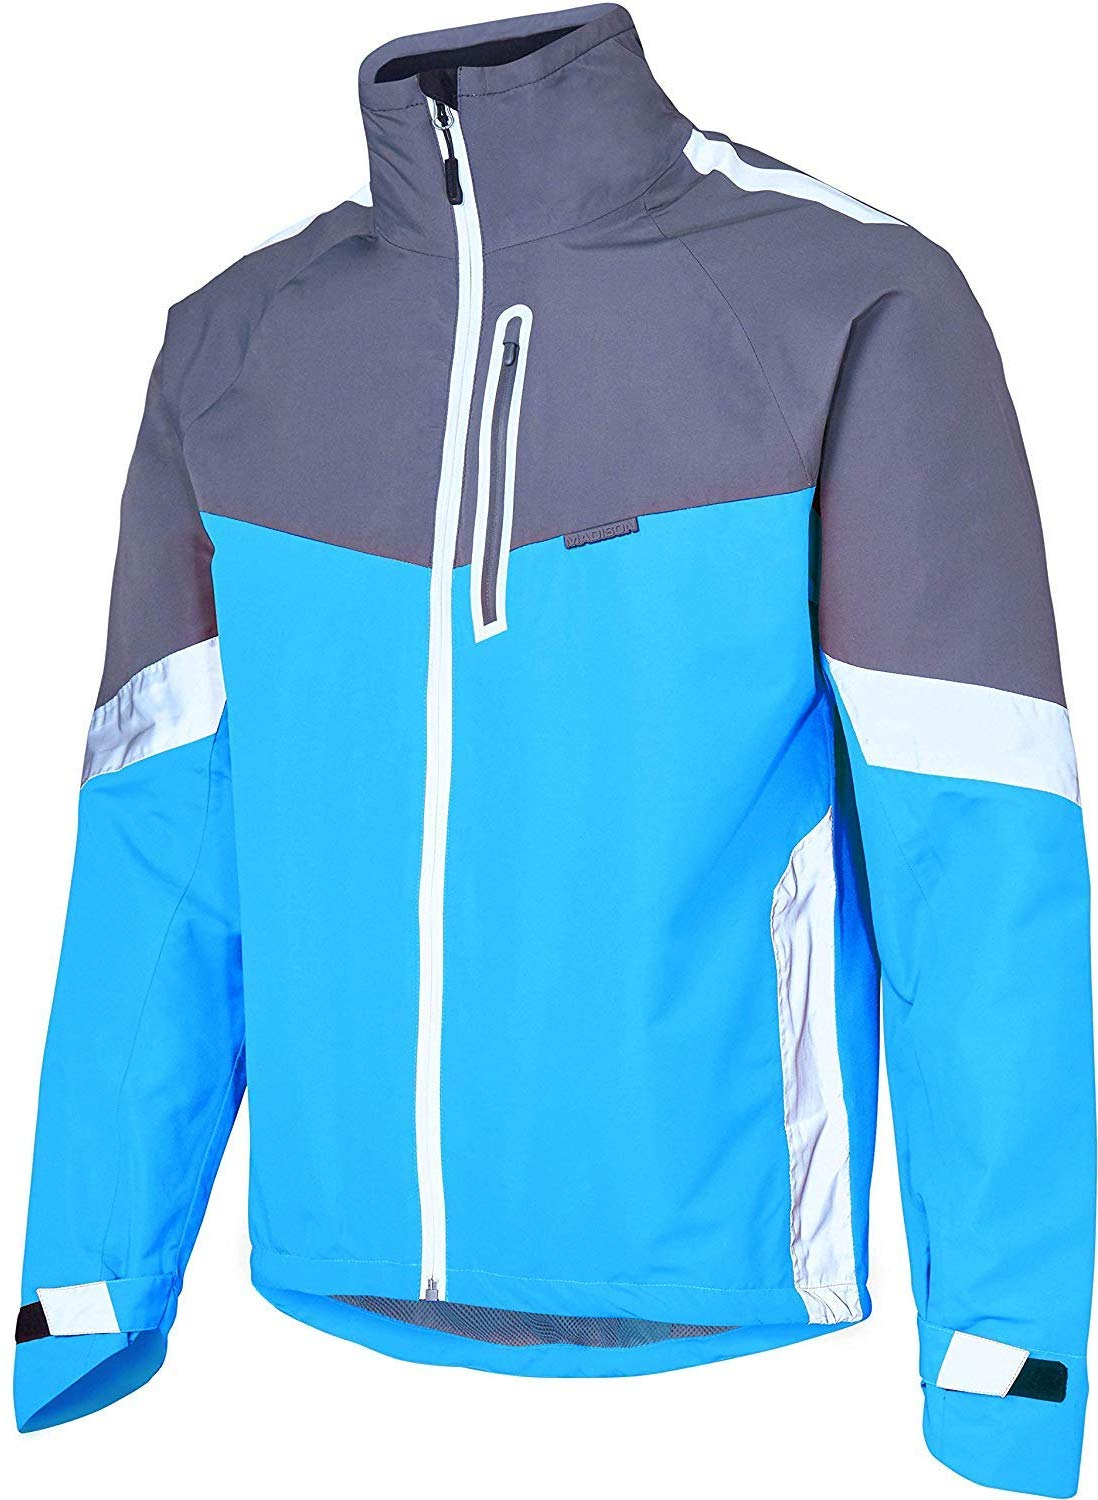 Madison Protec Mens Waterproof Cycling Jacket